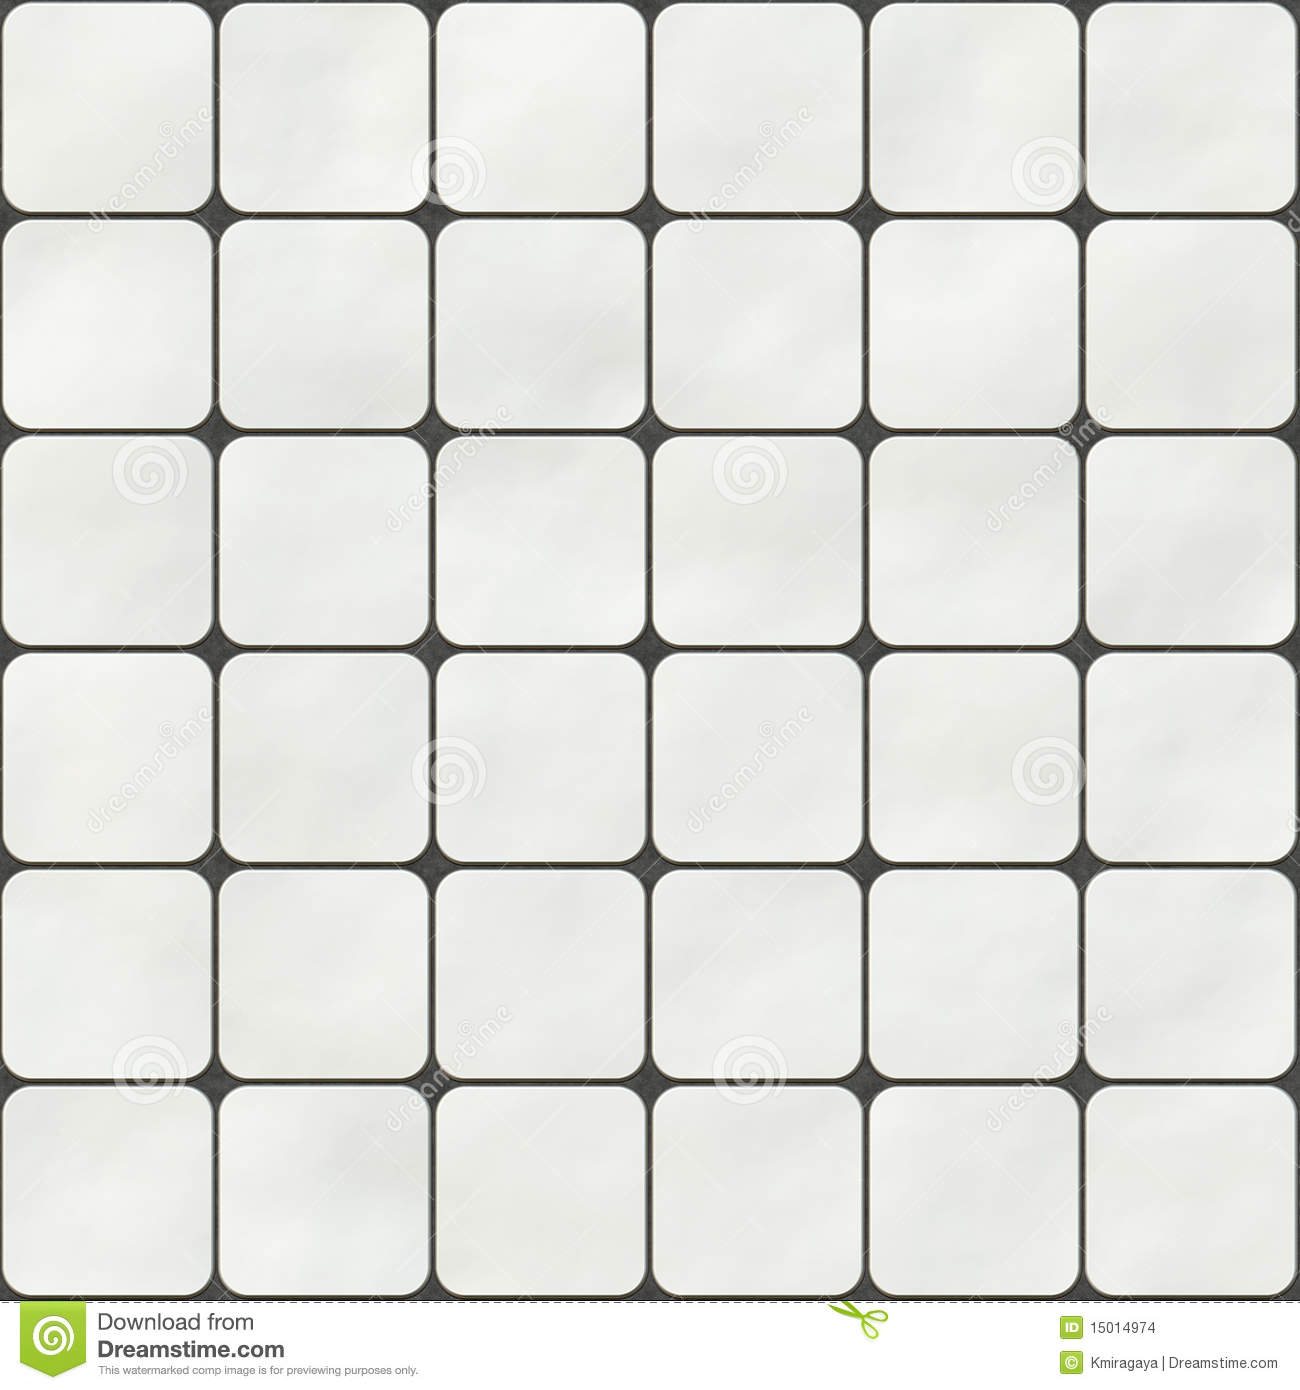 Seamless Texture Made Of White Square Tiles